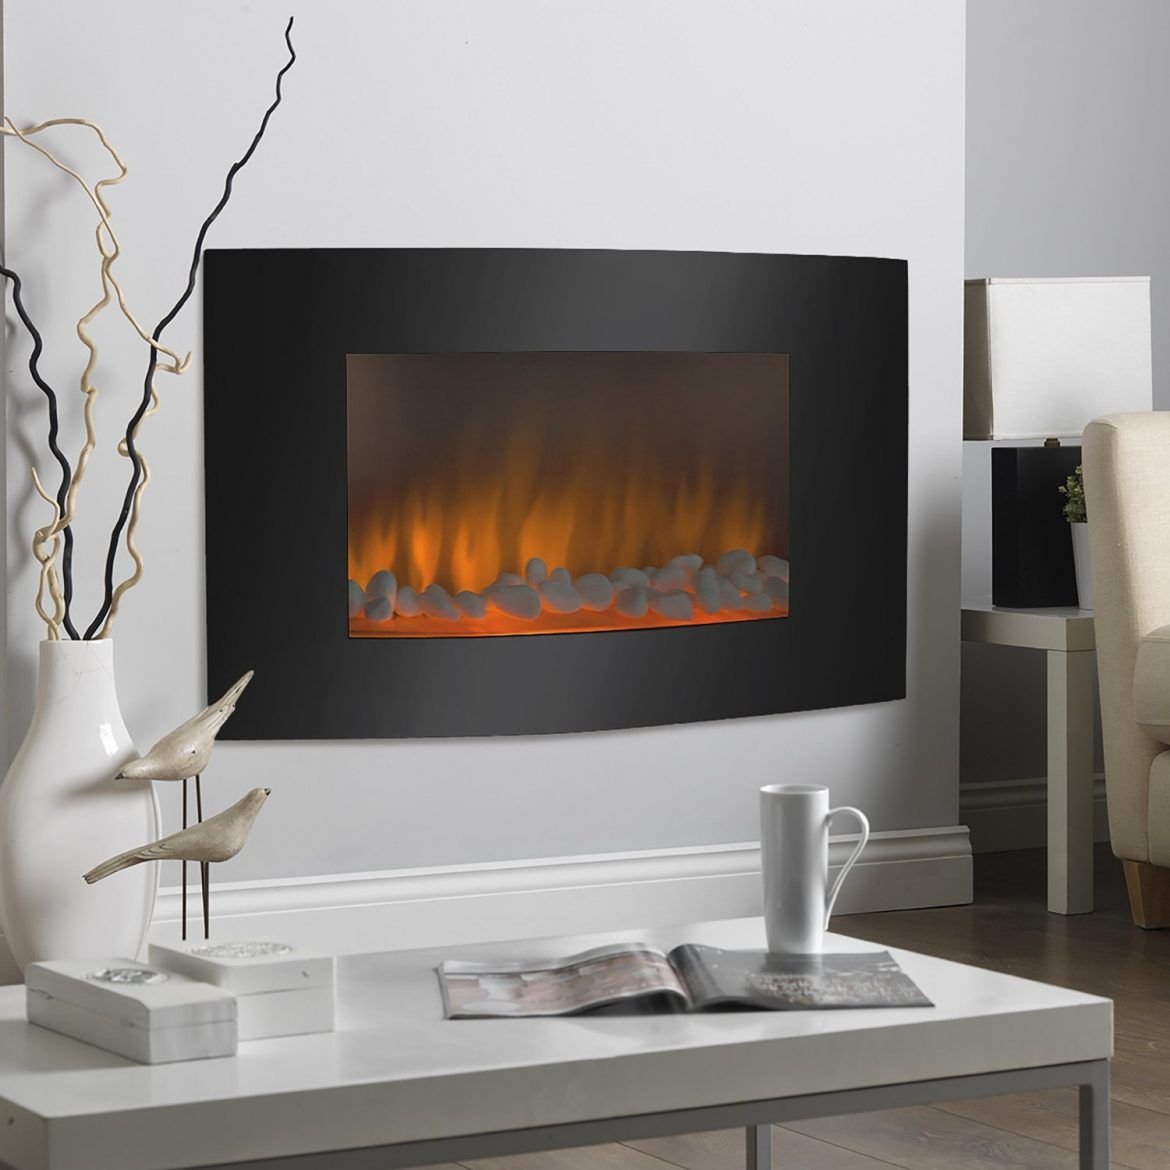 Pros Cons Modern Electric Fireplaces Vs Ethanol Fireplace Inserts Decor Snob Fireplace Heater Wall Mount Electric Fireplace Wall Mounted Fireplace